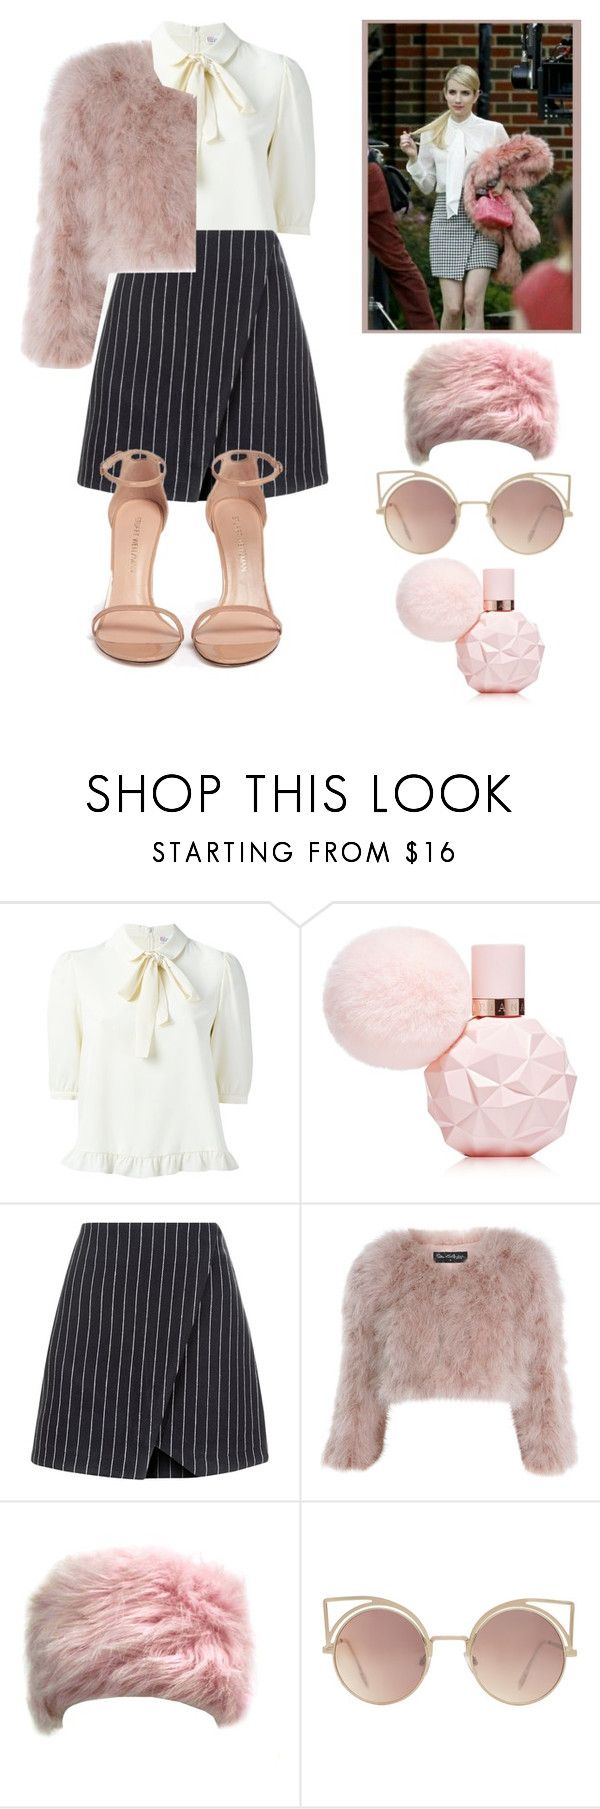 """""""Chanel Oberlin~Scream Queens"""" by elisa-toni ❤ liked on Polyvore featuring New Look, Miss Selfridge, MANGO and Stuart Weitzman"""